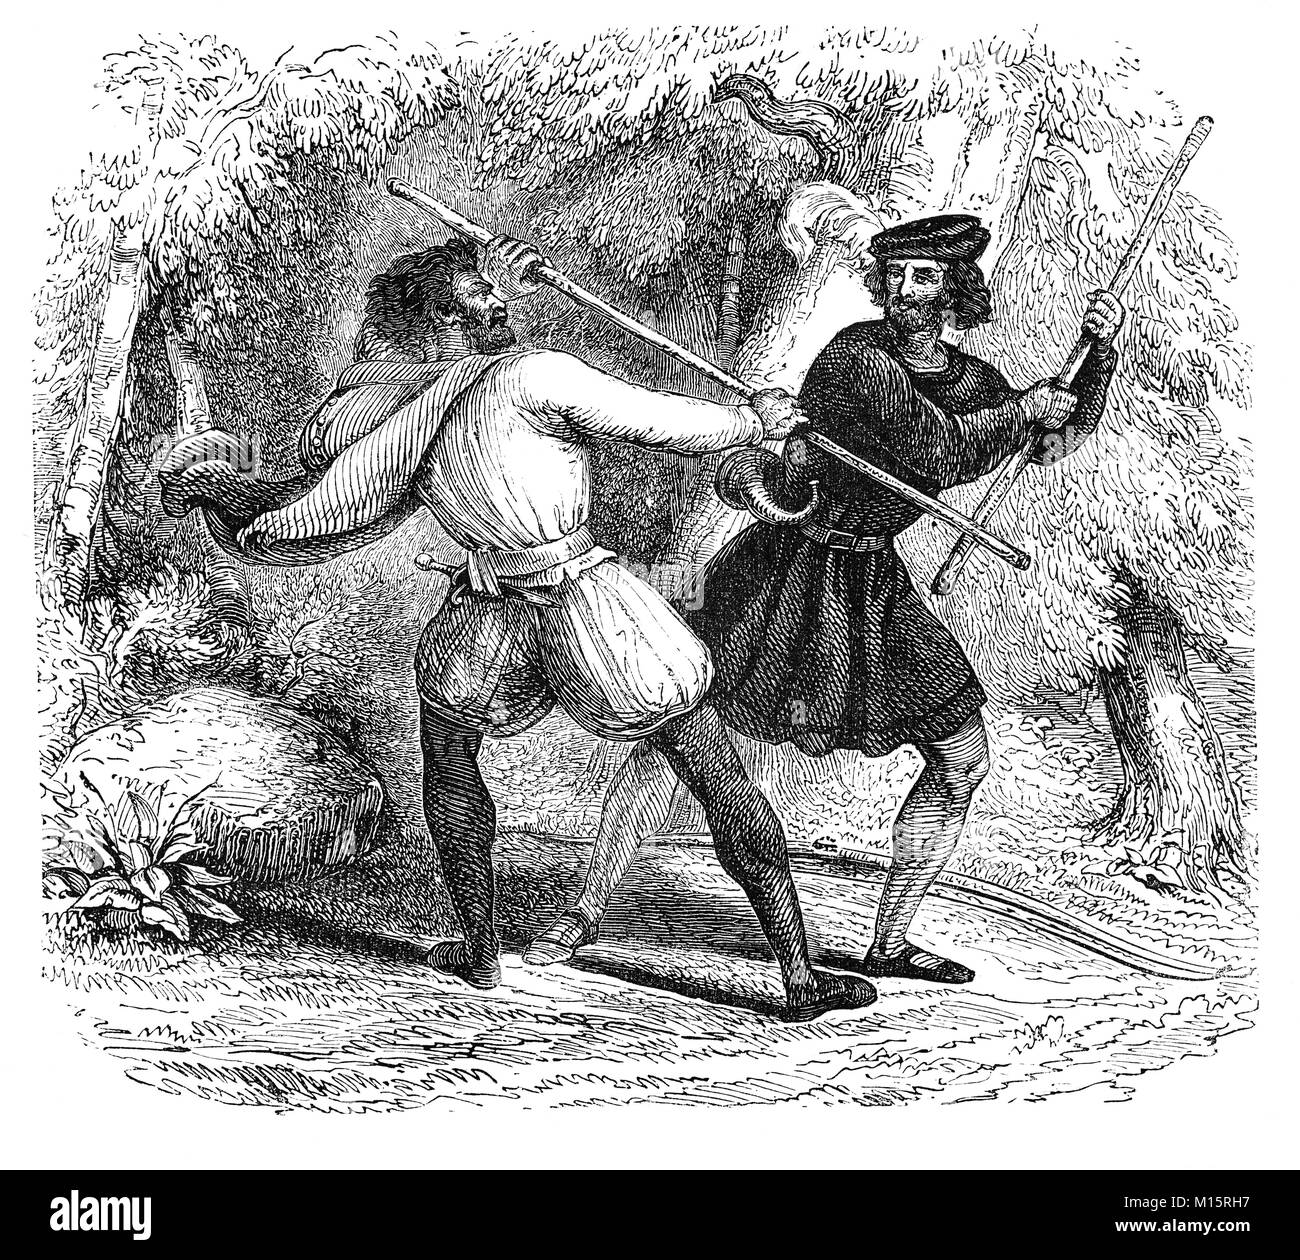 Robin Hood and Little John fighting with staffs in 14th Century Sherwood Forest, in Nottinghamshire,  England. - Stock Image